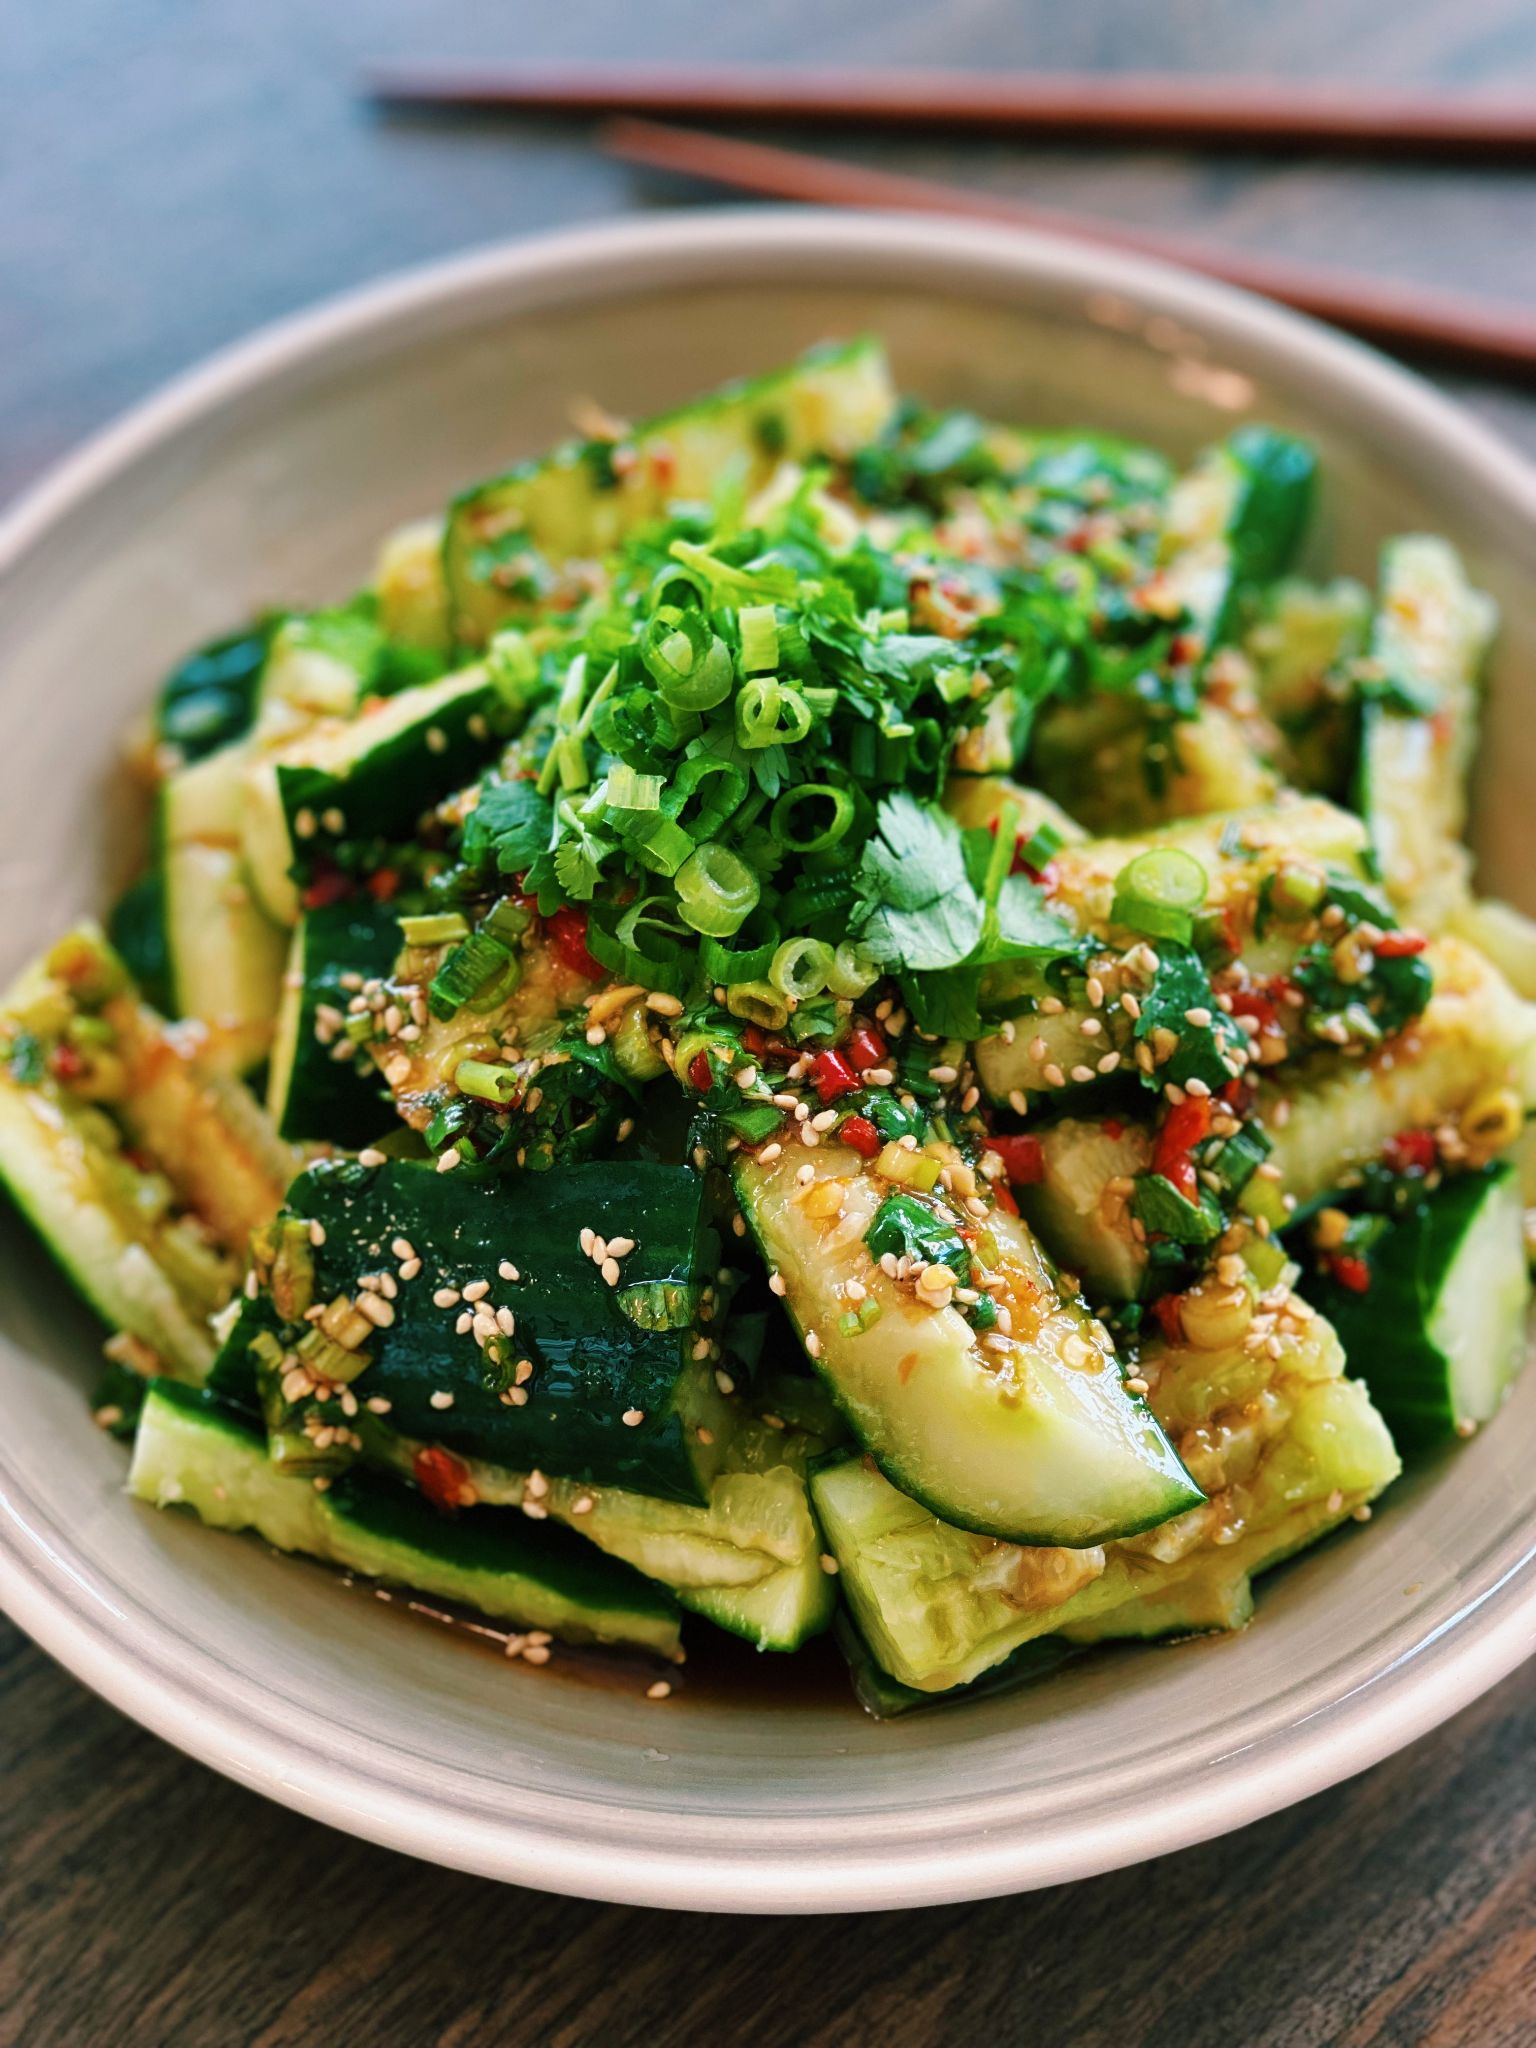 Spicy Smashed Cucumber Salad (10 Minutes)